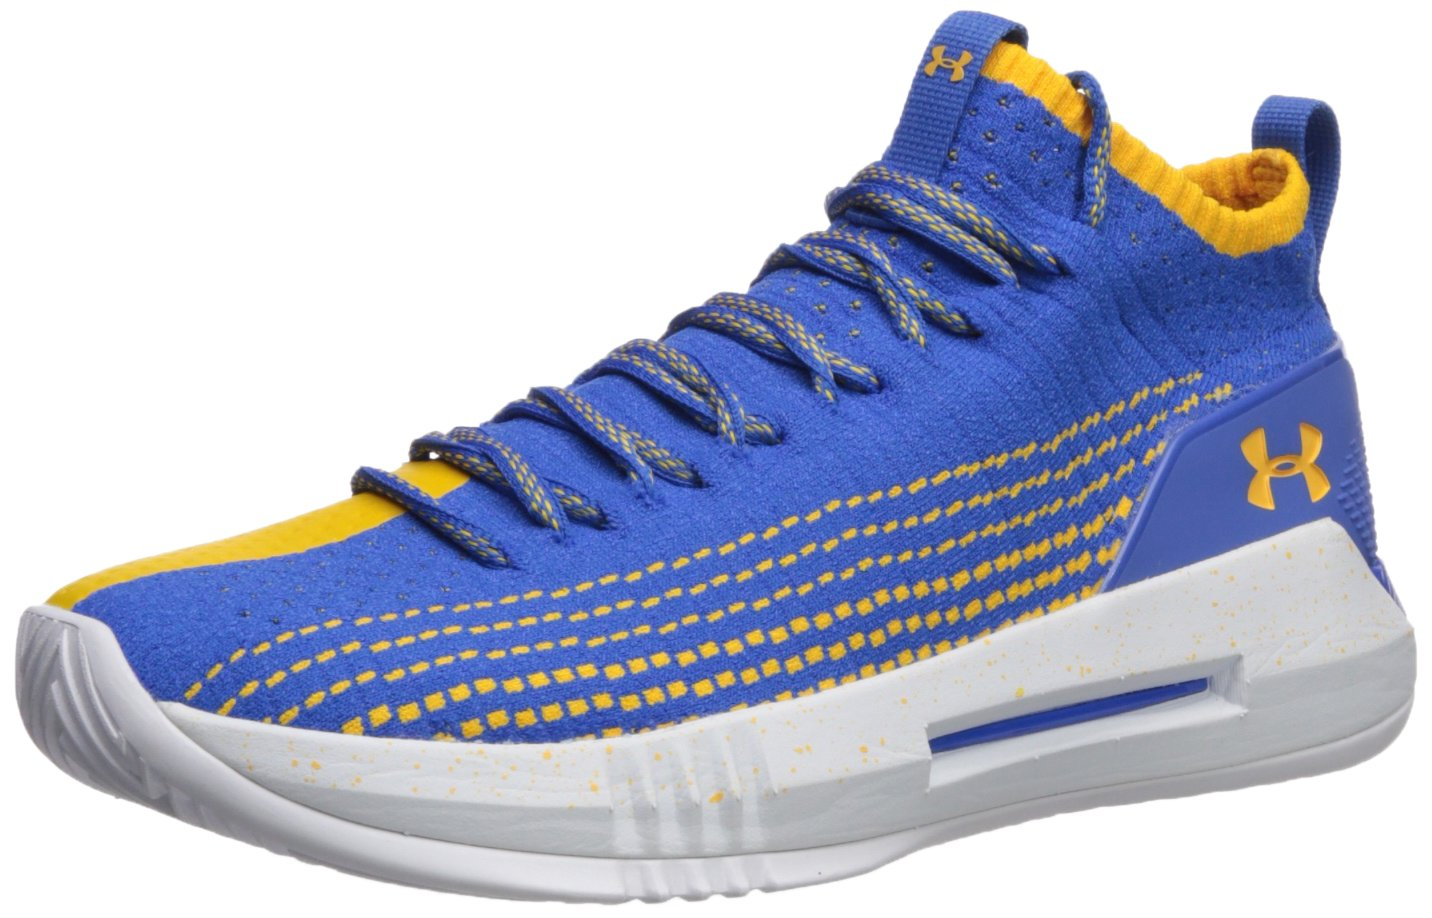 Under Armour Men's Heat Seeker Basketball Shoe, Blue, 16 by Under Armour